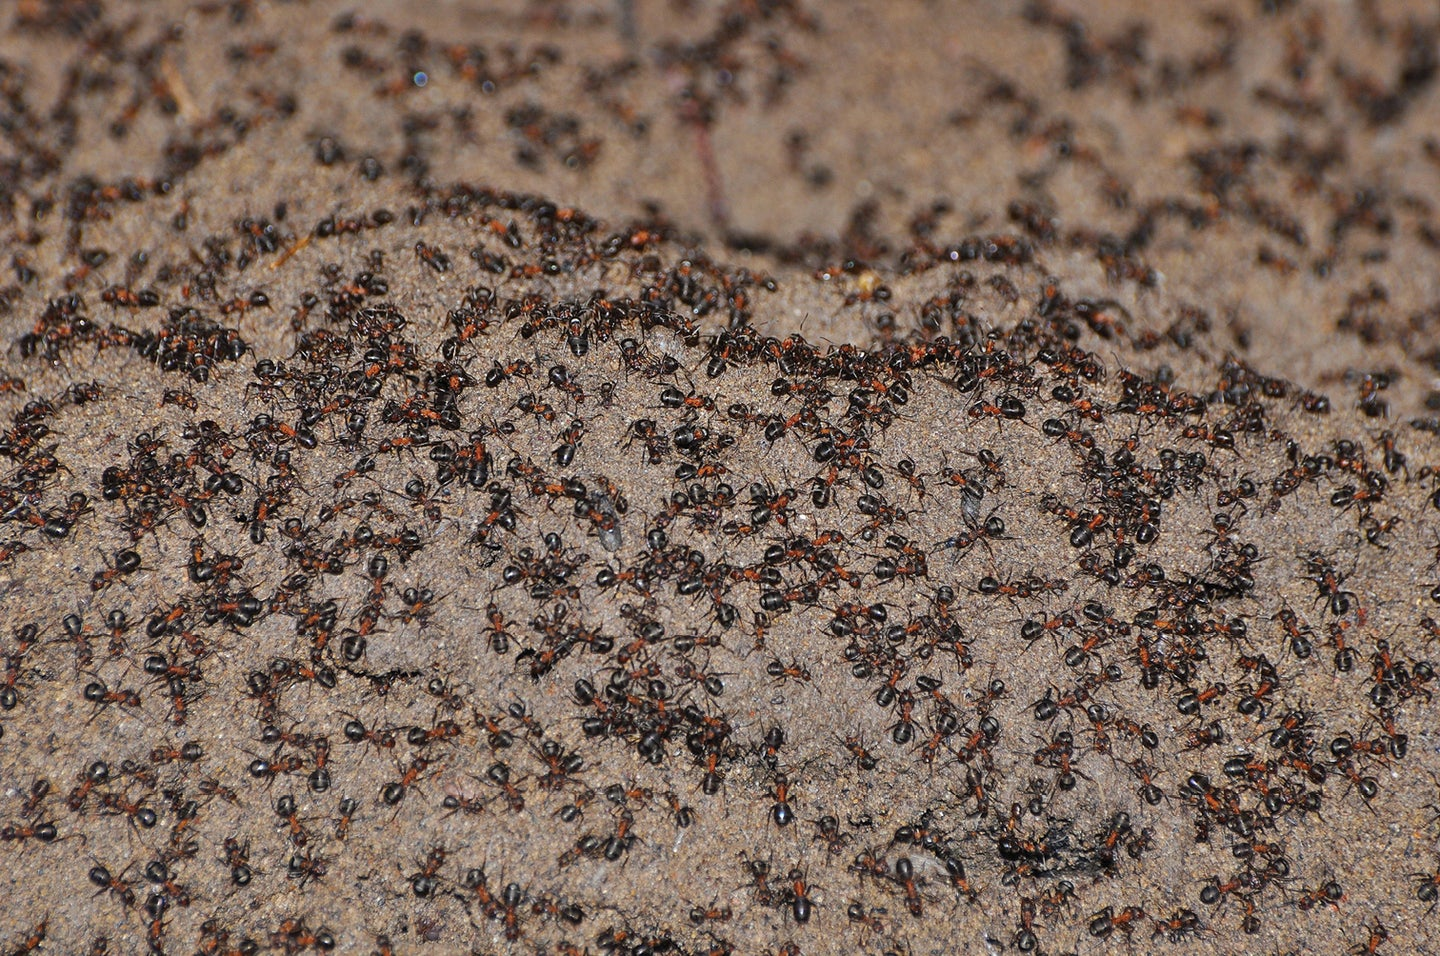 Wood ant colony in Poland